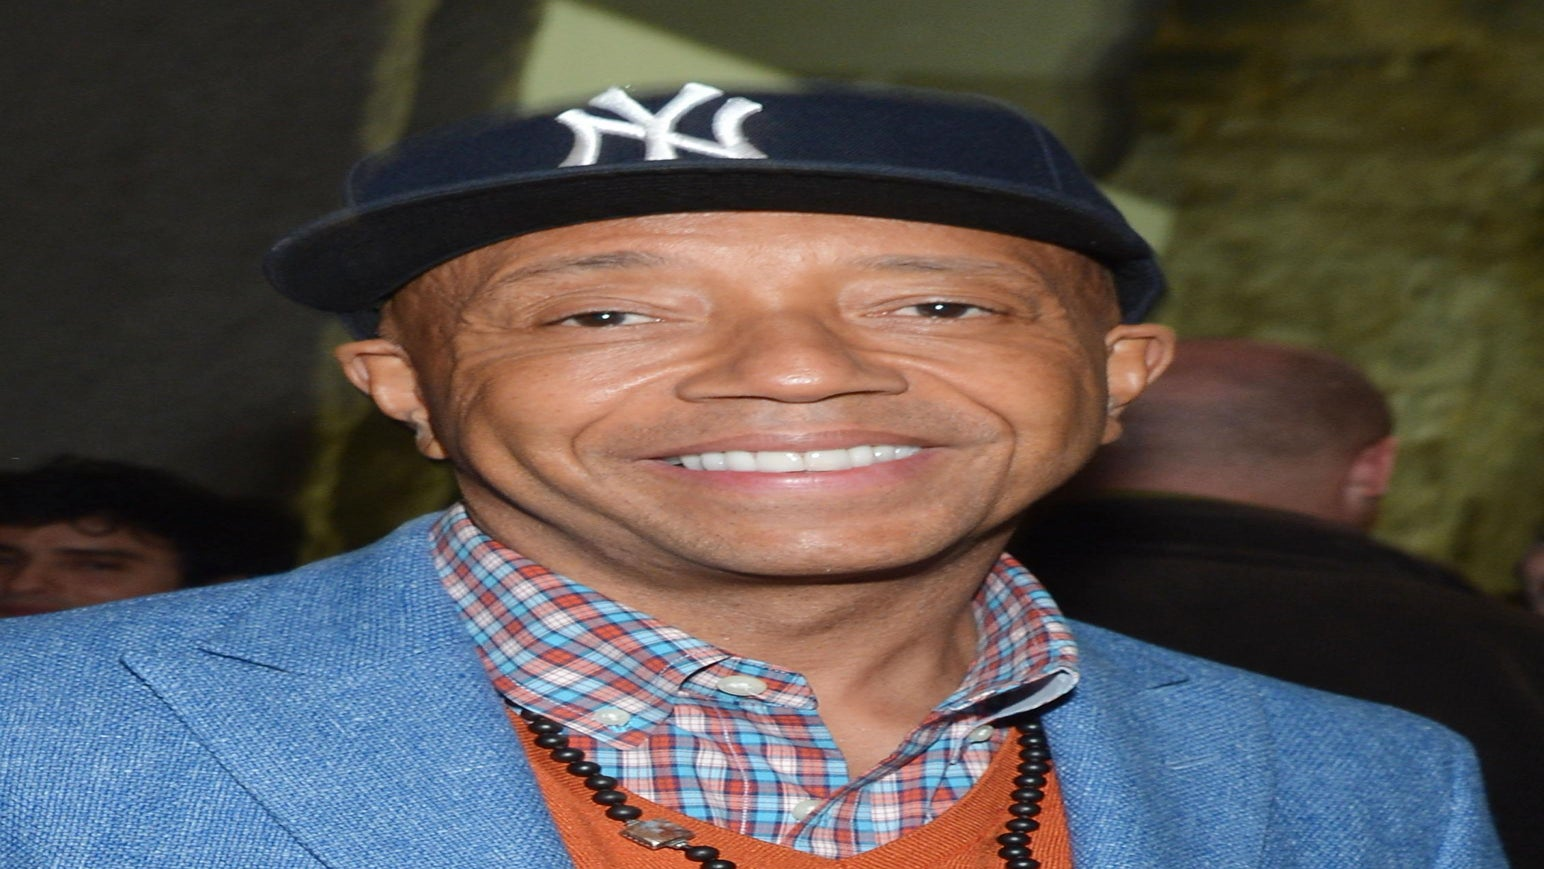 Russell Simmons Tells Donald Trump to 'Stop the BS'